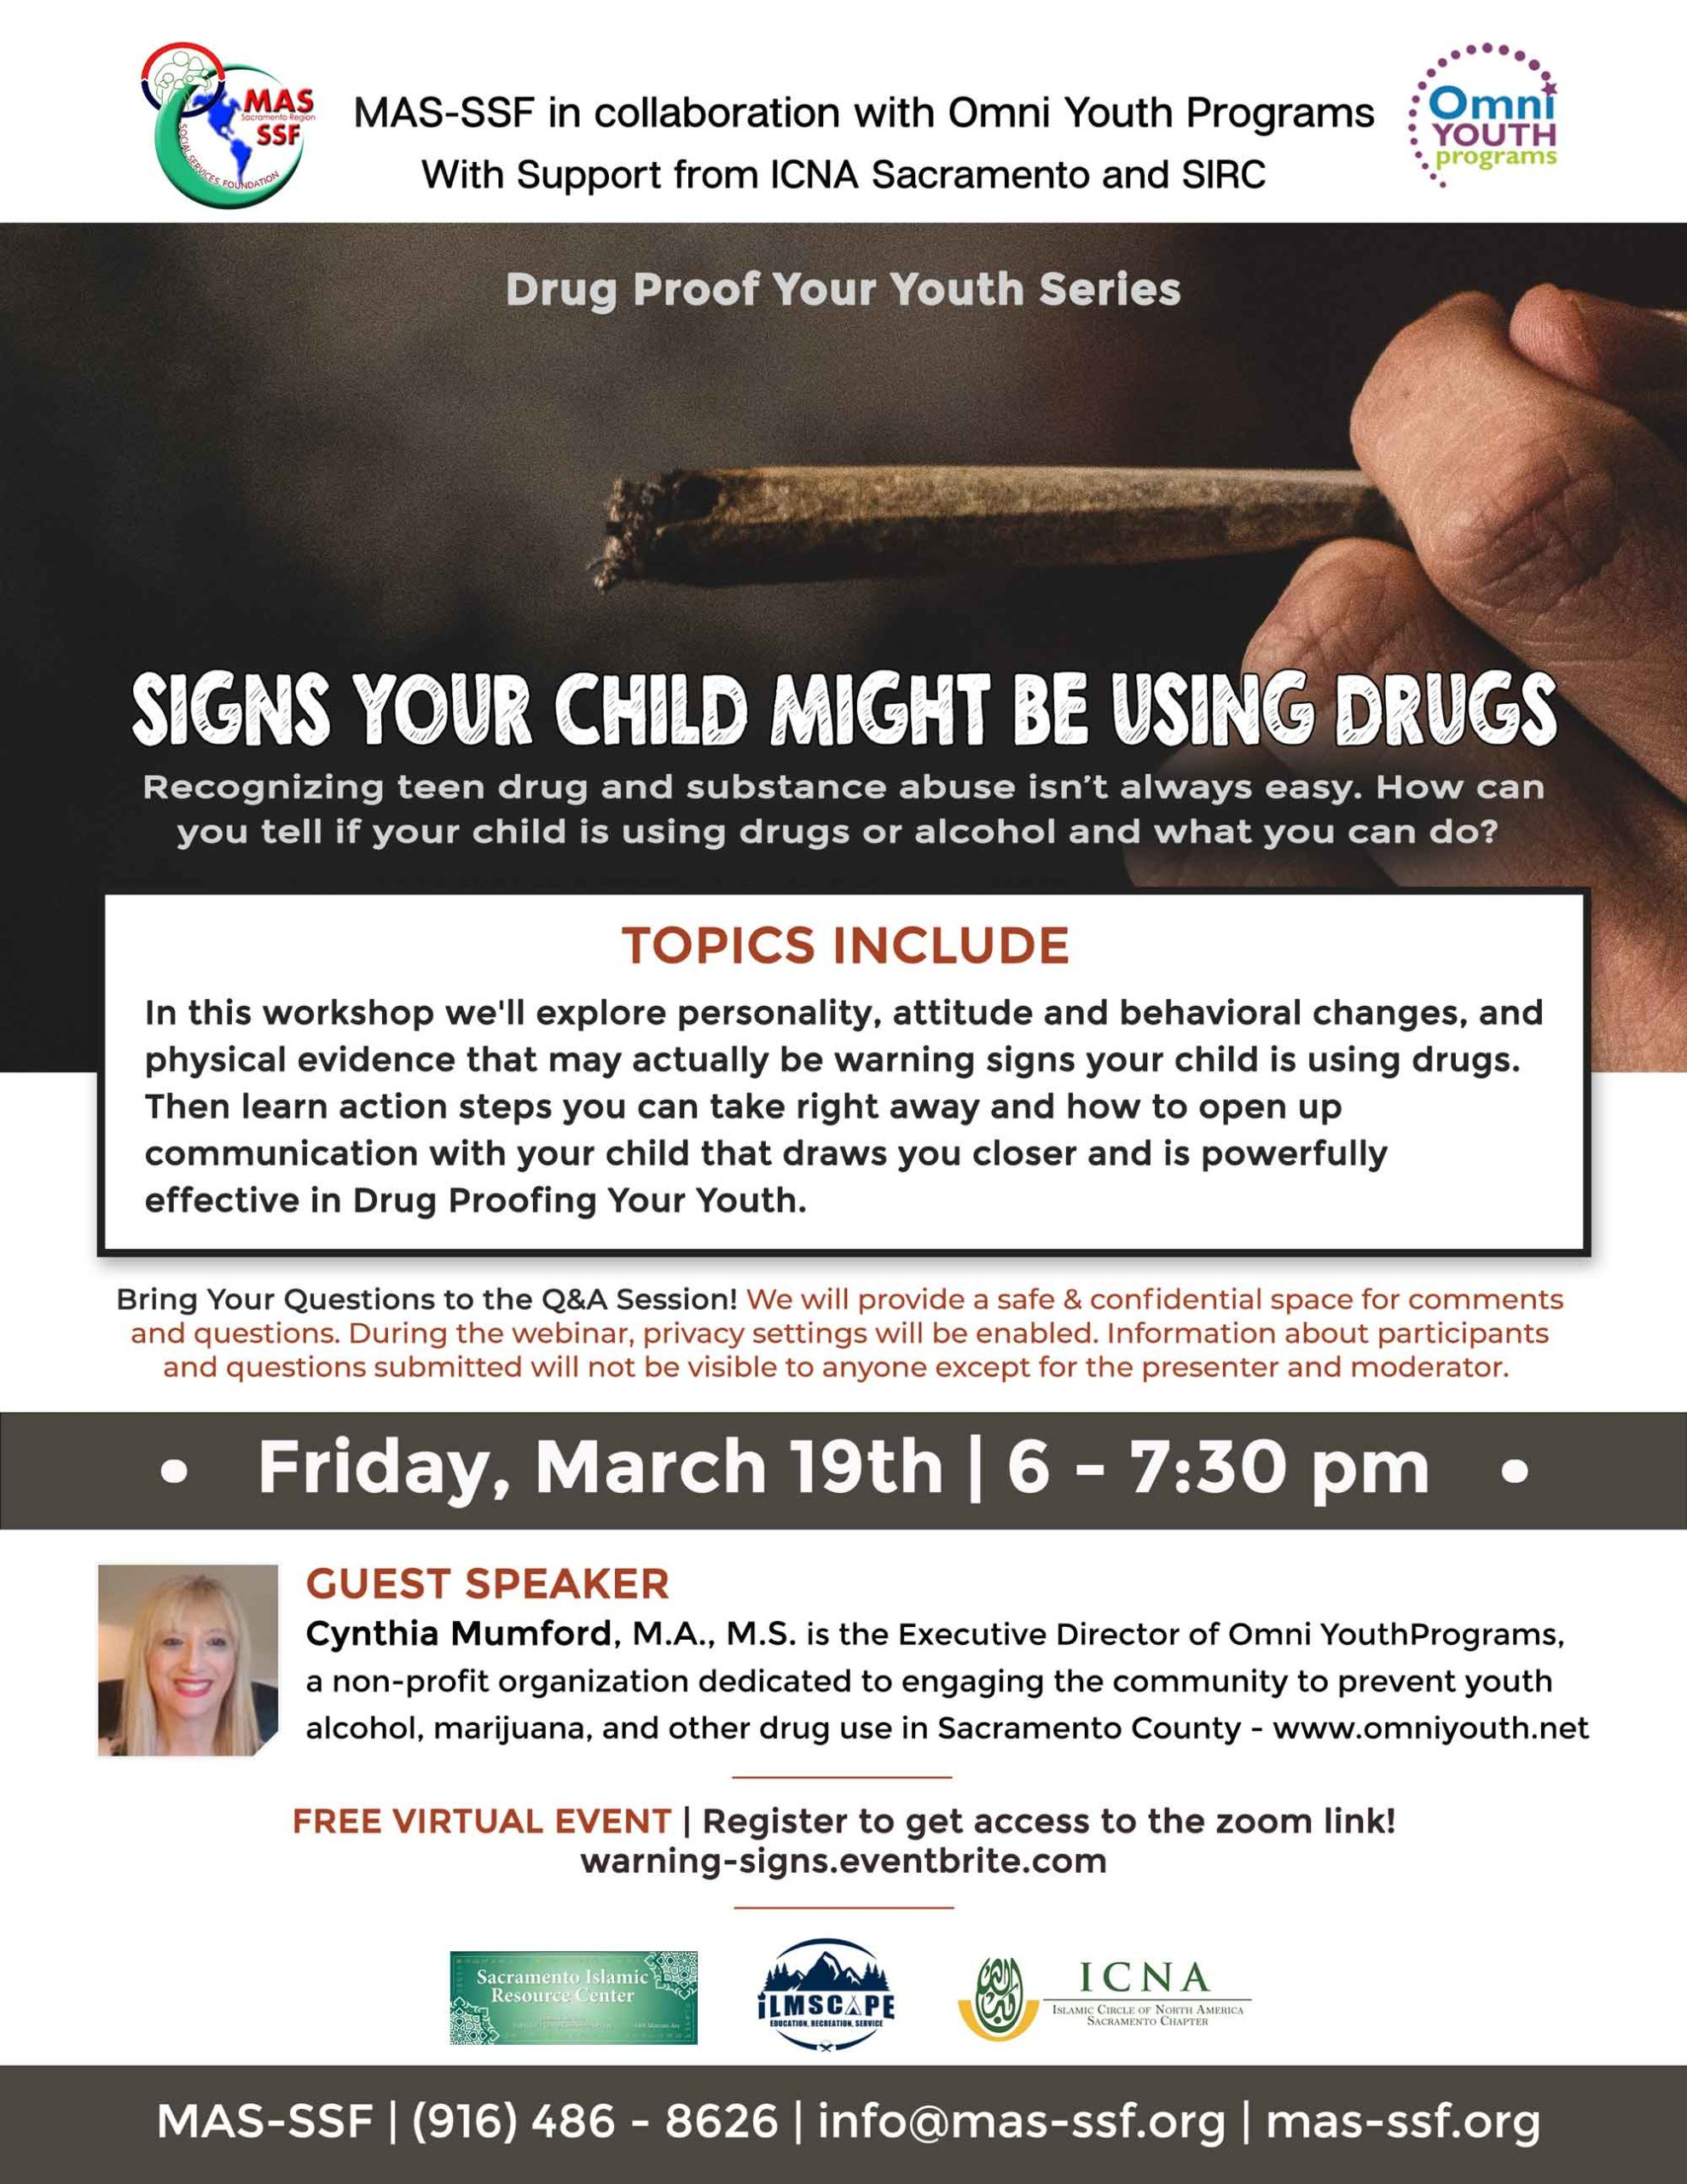 Signs Your Child Might Be Using Drugs